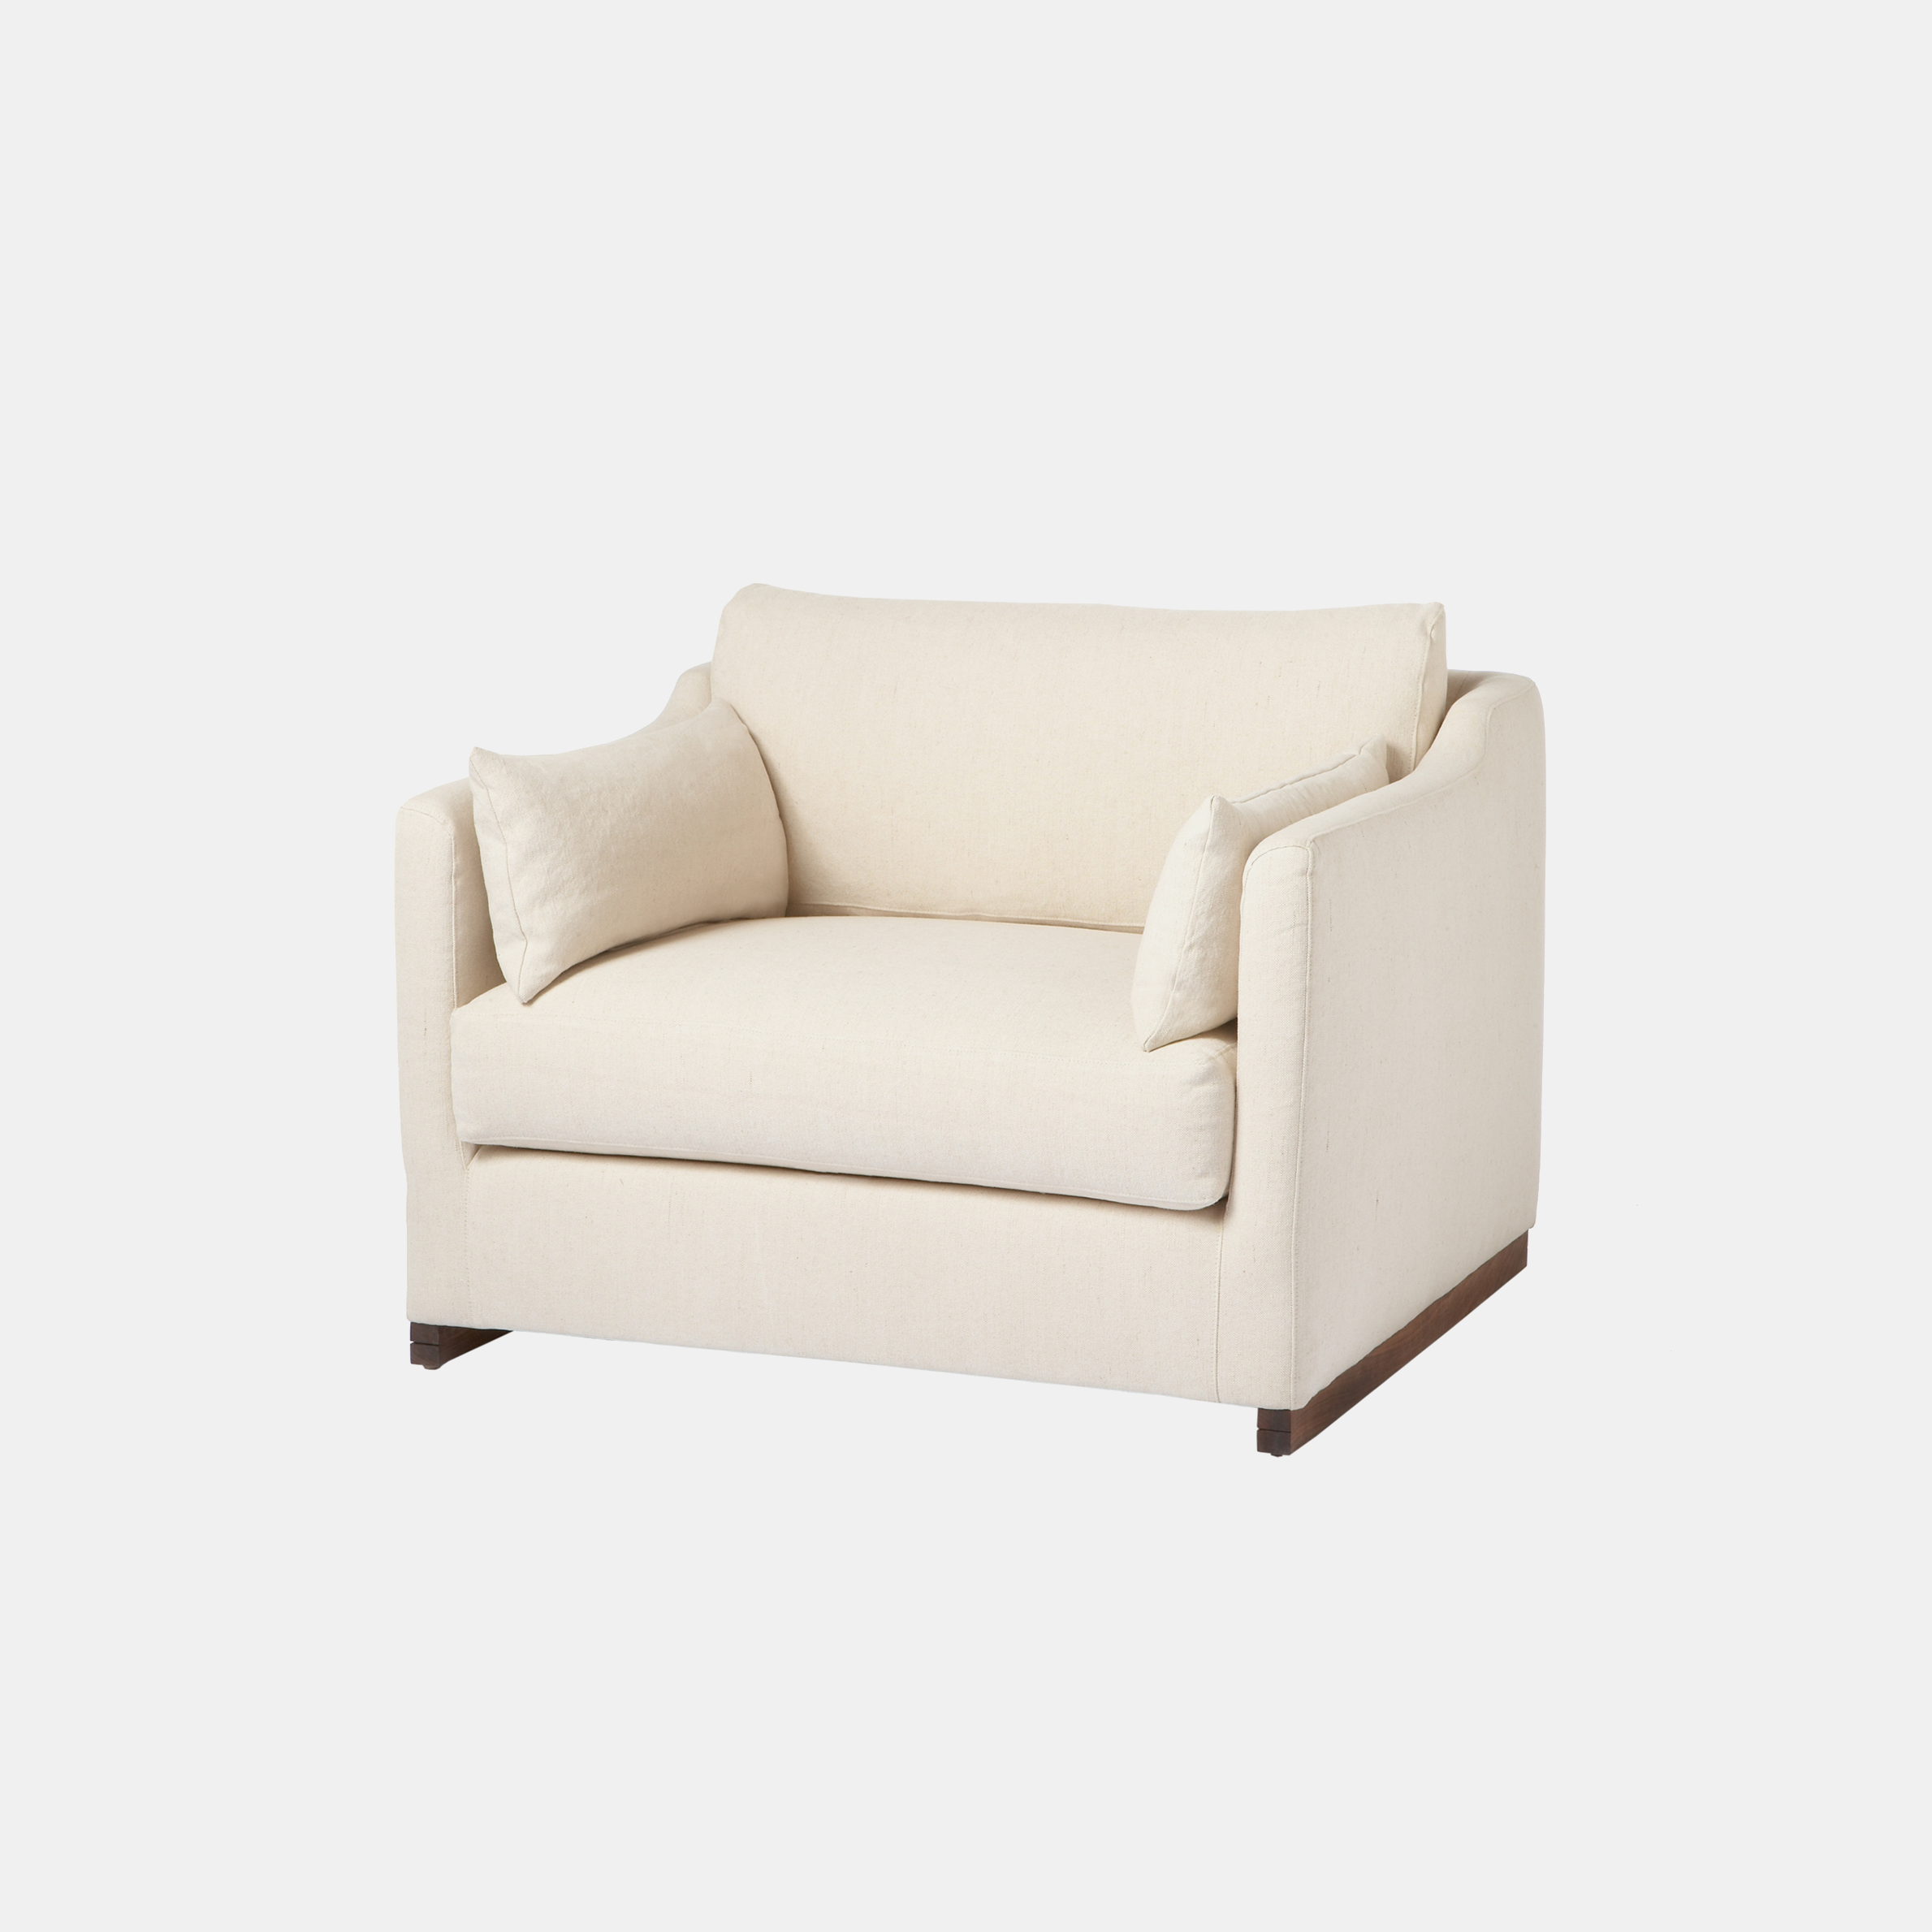 """Dexter Chair  41""""w x 29""""h x 38""""d Also available as mini chair, loveseat, sofa, or sectional. SKU99482CSC"""